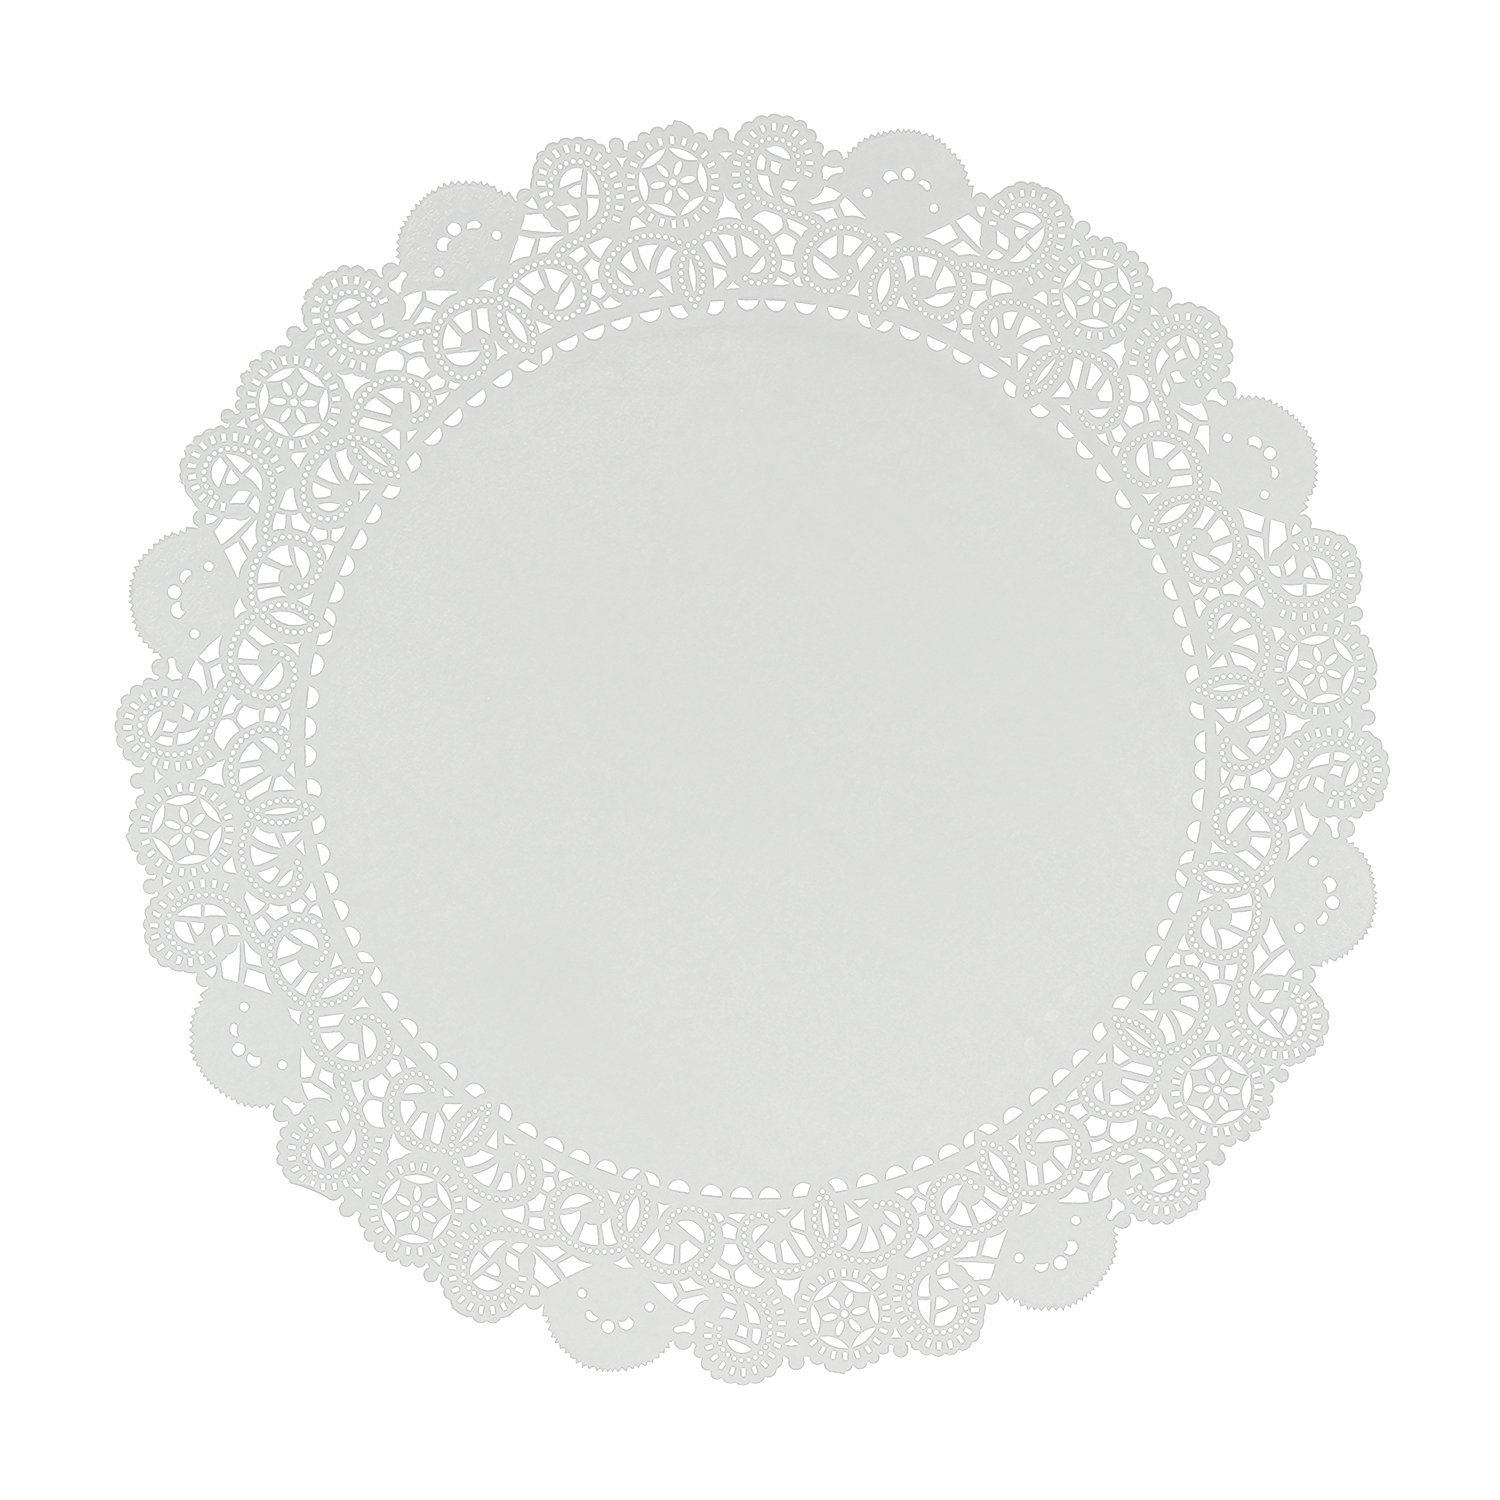 Royal 16 Inch Disposable Paper Lace Doilies, Package of 250 by ROYAL